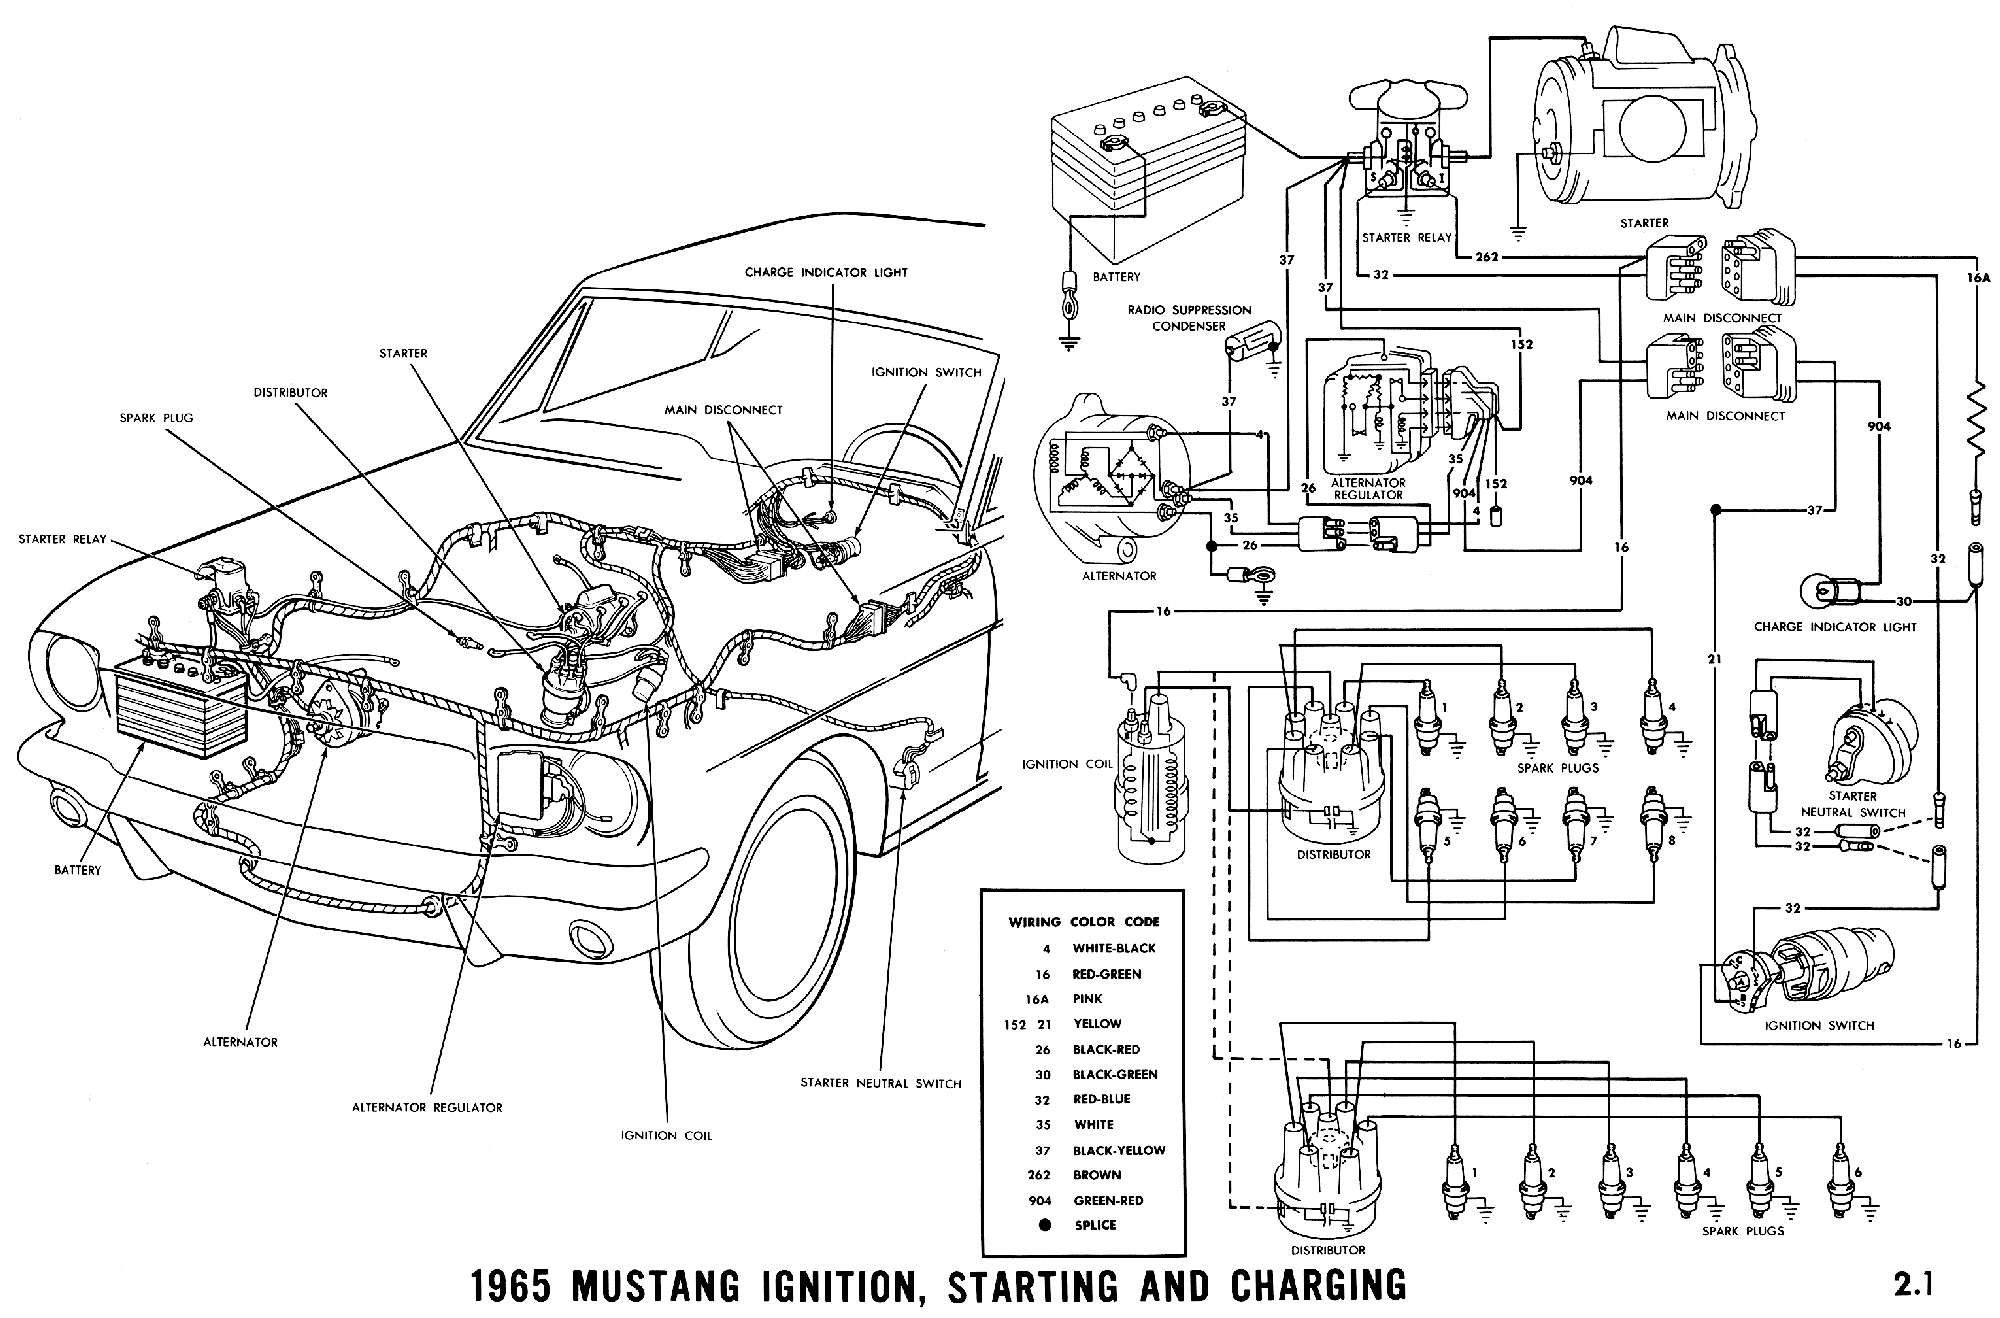 1965 Mustang Wiring Diagrams - Average Joe Restoration - Ford Wiring Harness Diagram